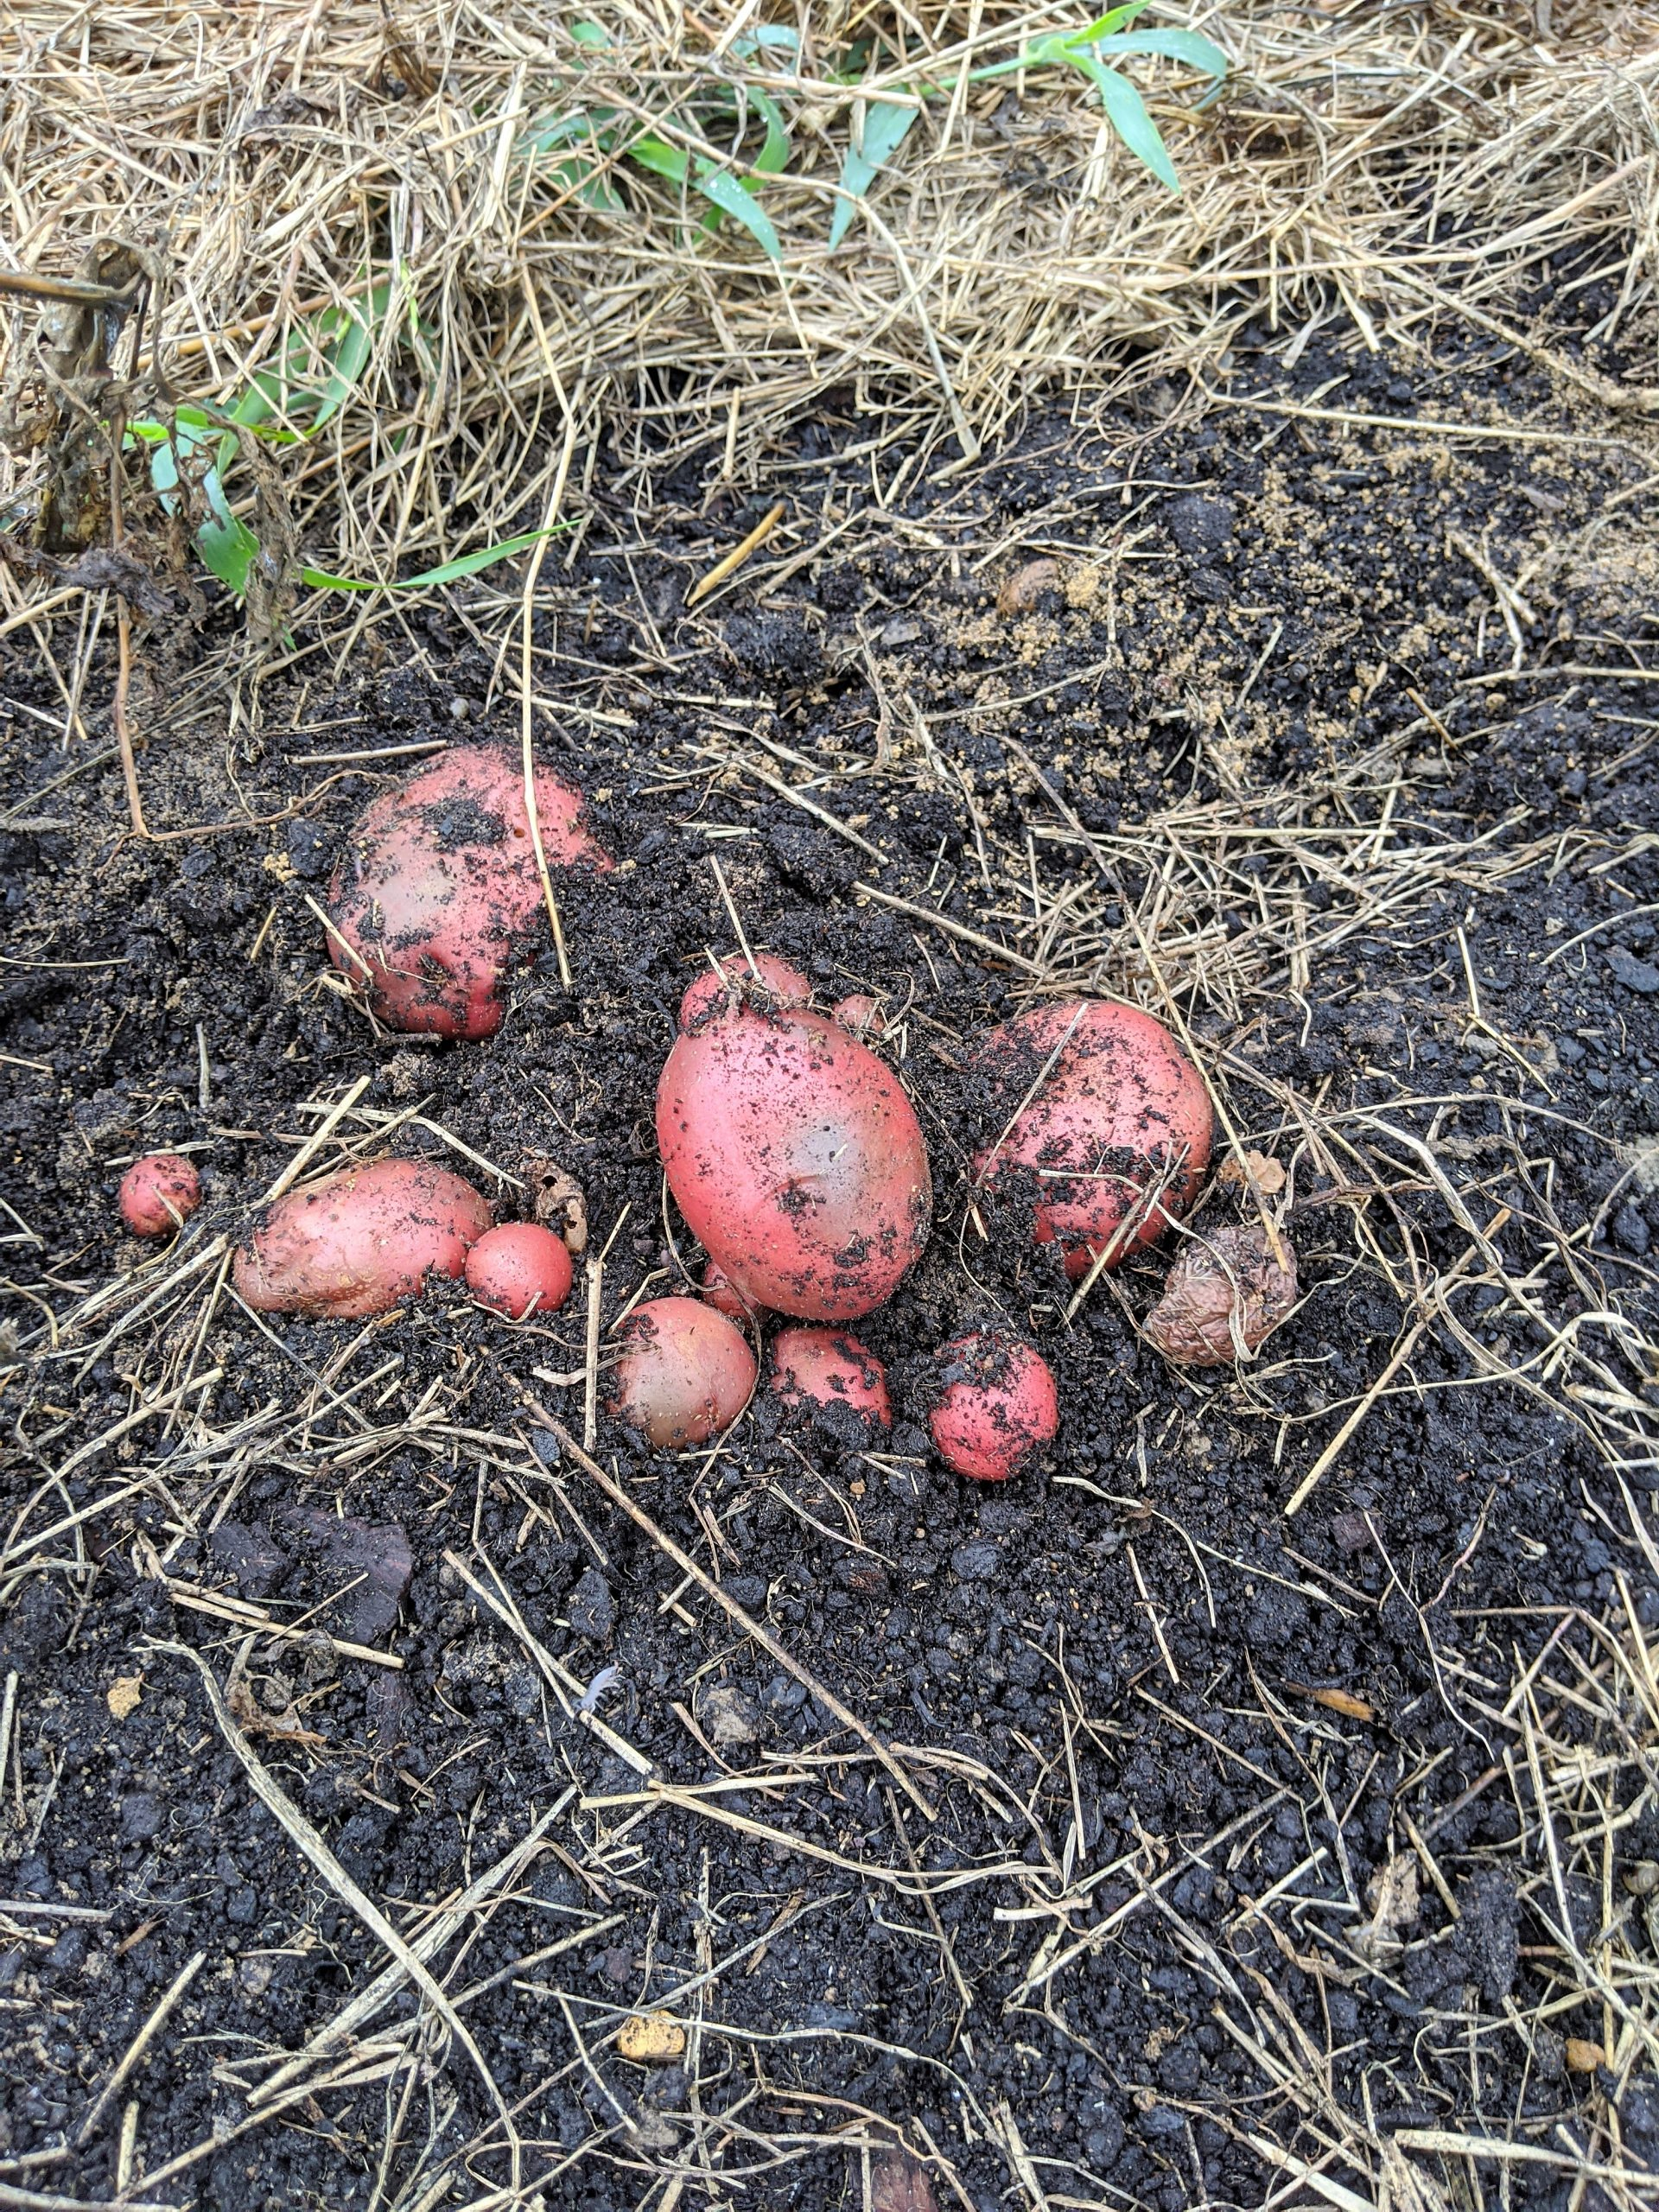 A cluster of red potatoes peak out of the earth after the plant was pulled up